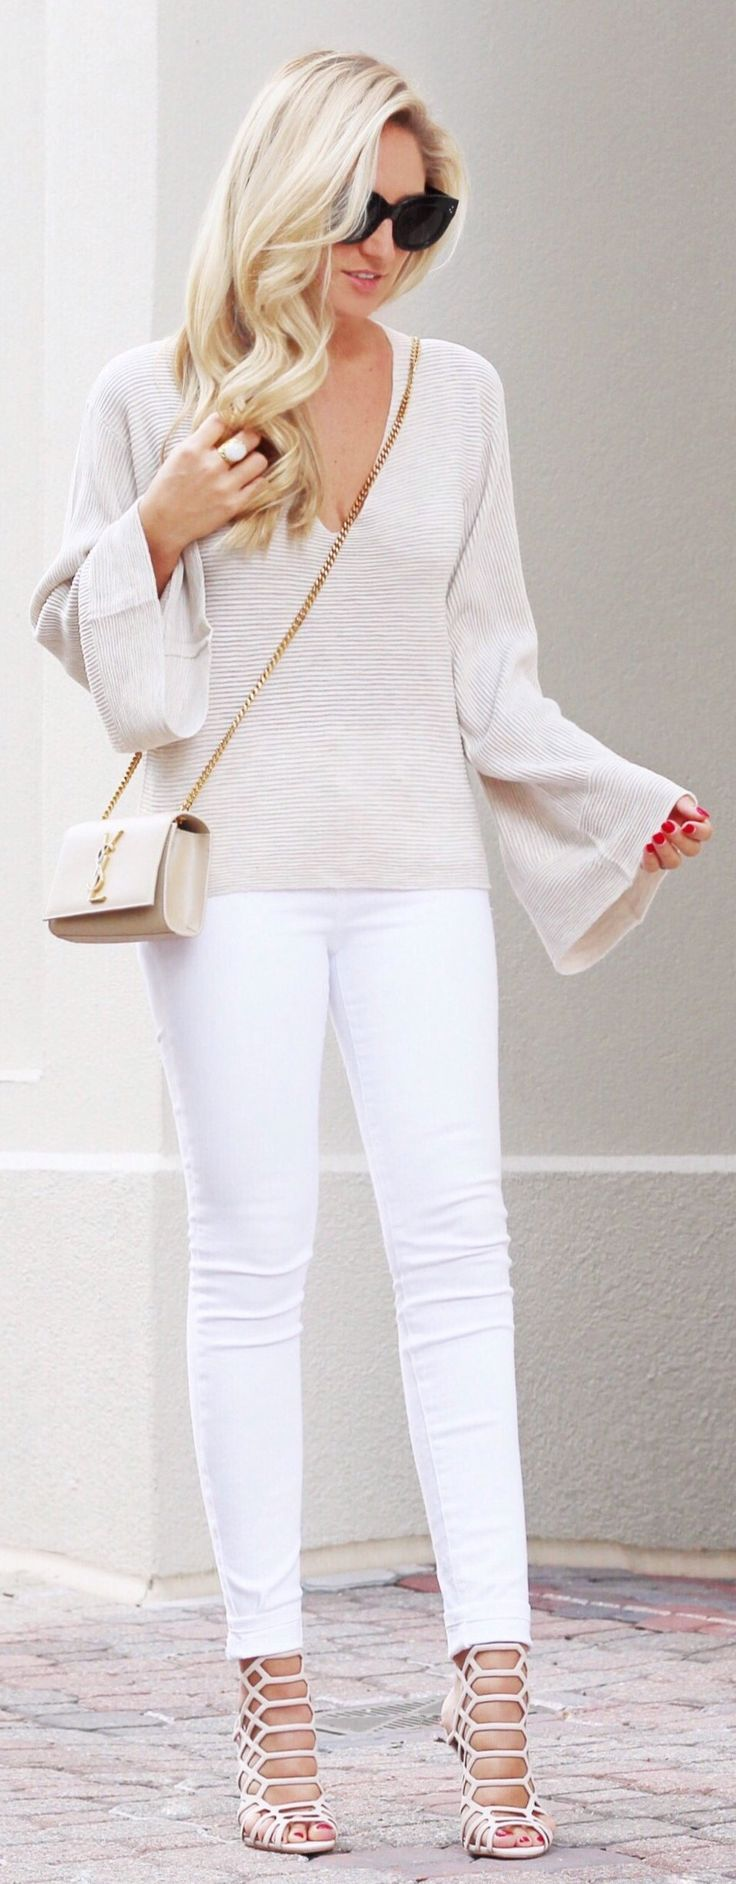 Light Knit & White Skinny Jeans & Beige Laced Up Sandals